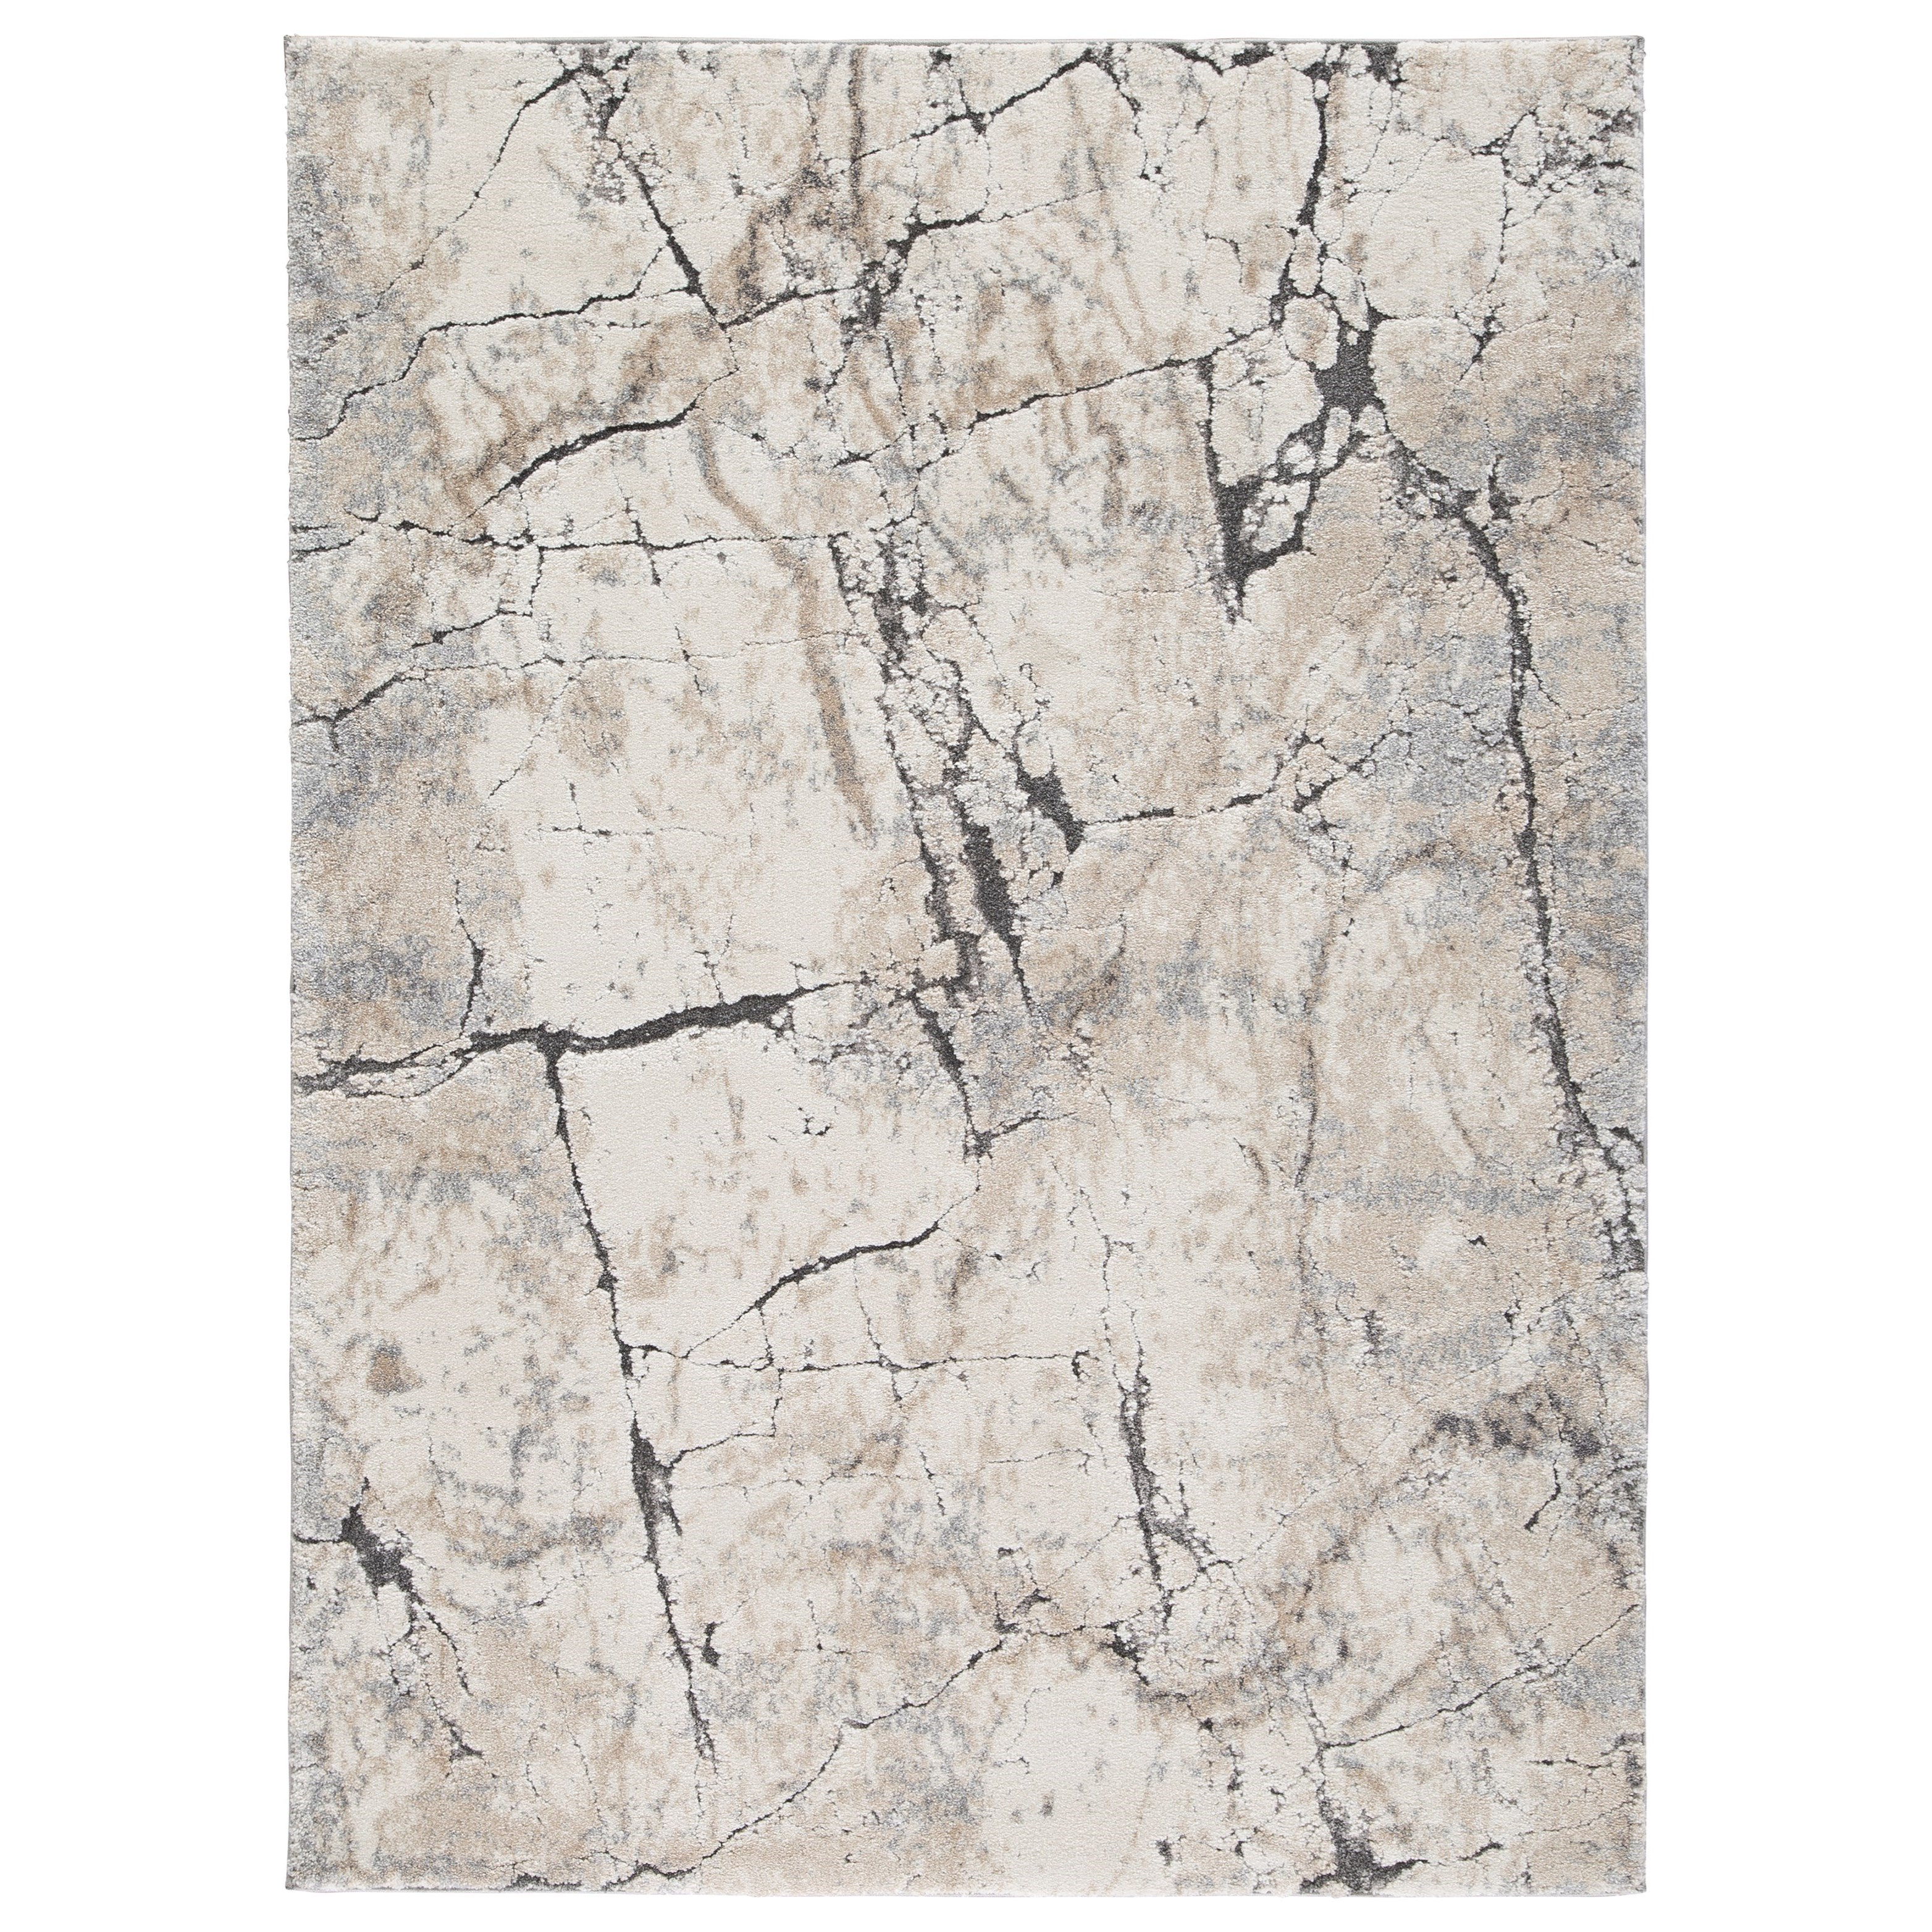 Contemporary Area Rugs Wyscott Medium Rug by Signature Design by Ashley at Smart Buy Furniture